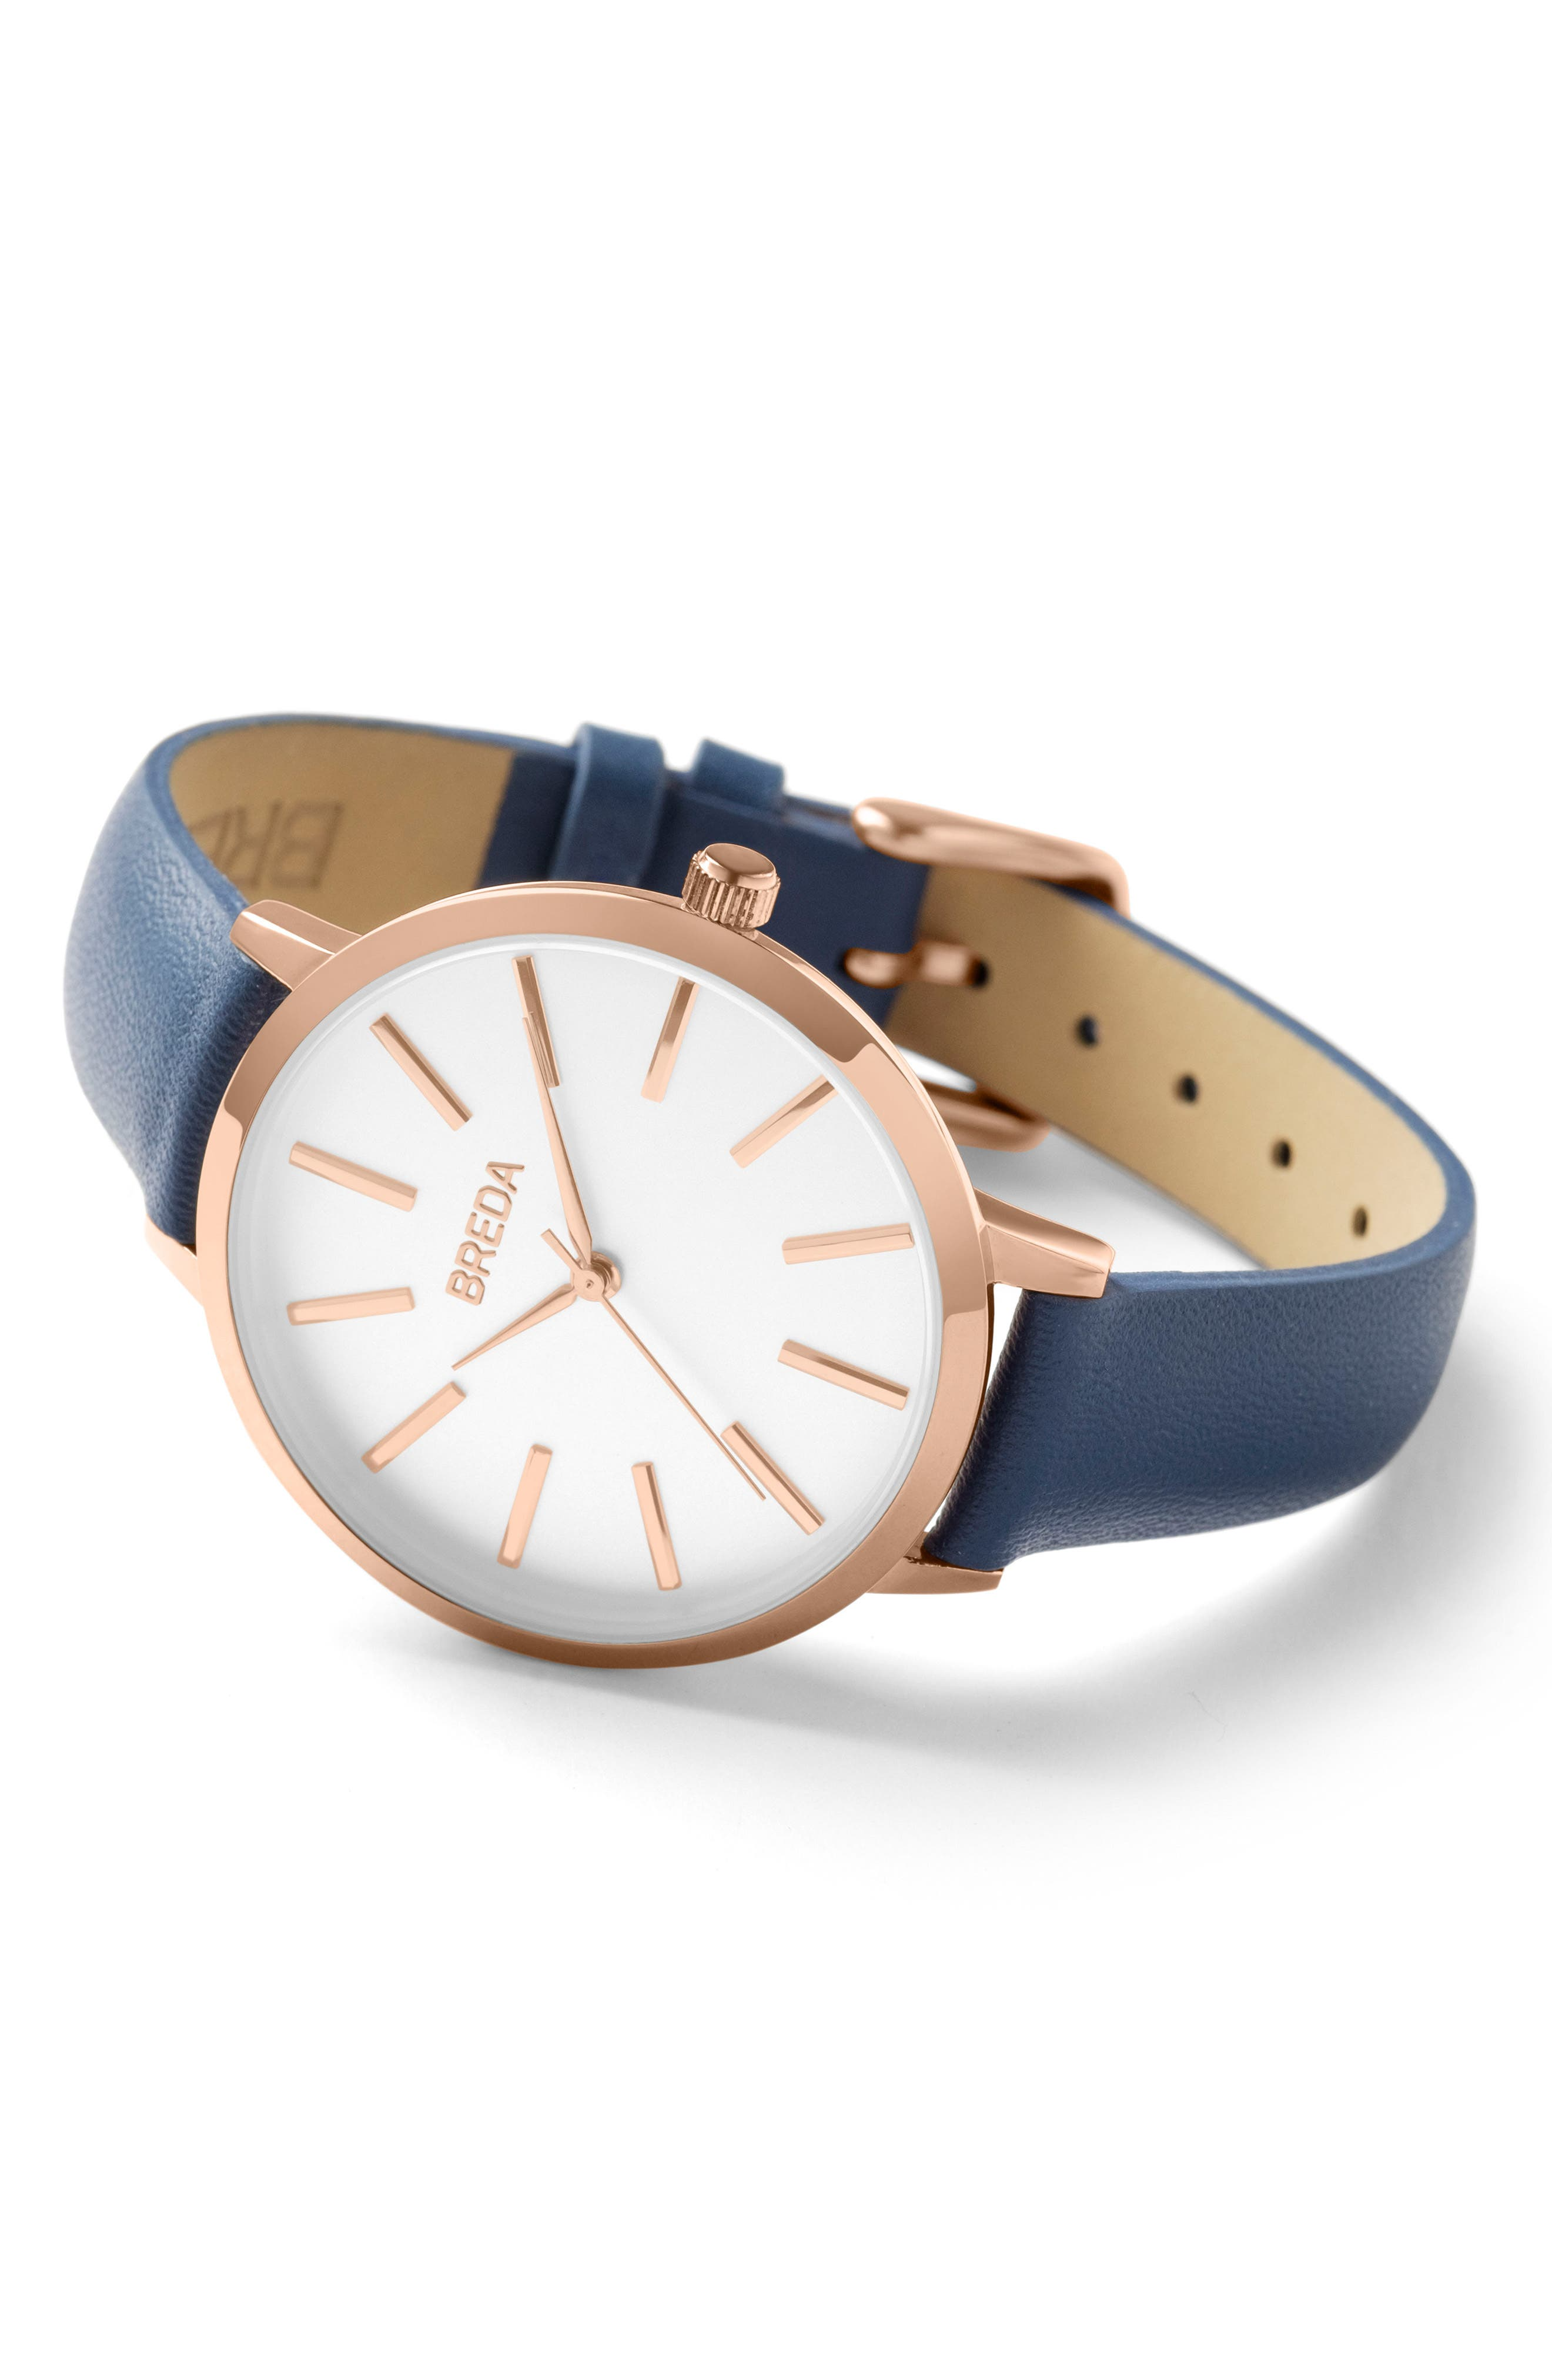 Joule Round Leather Strap Watch, 37mm,                             Alternate thumbnail 12, color,